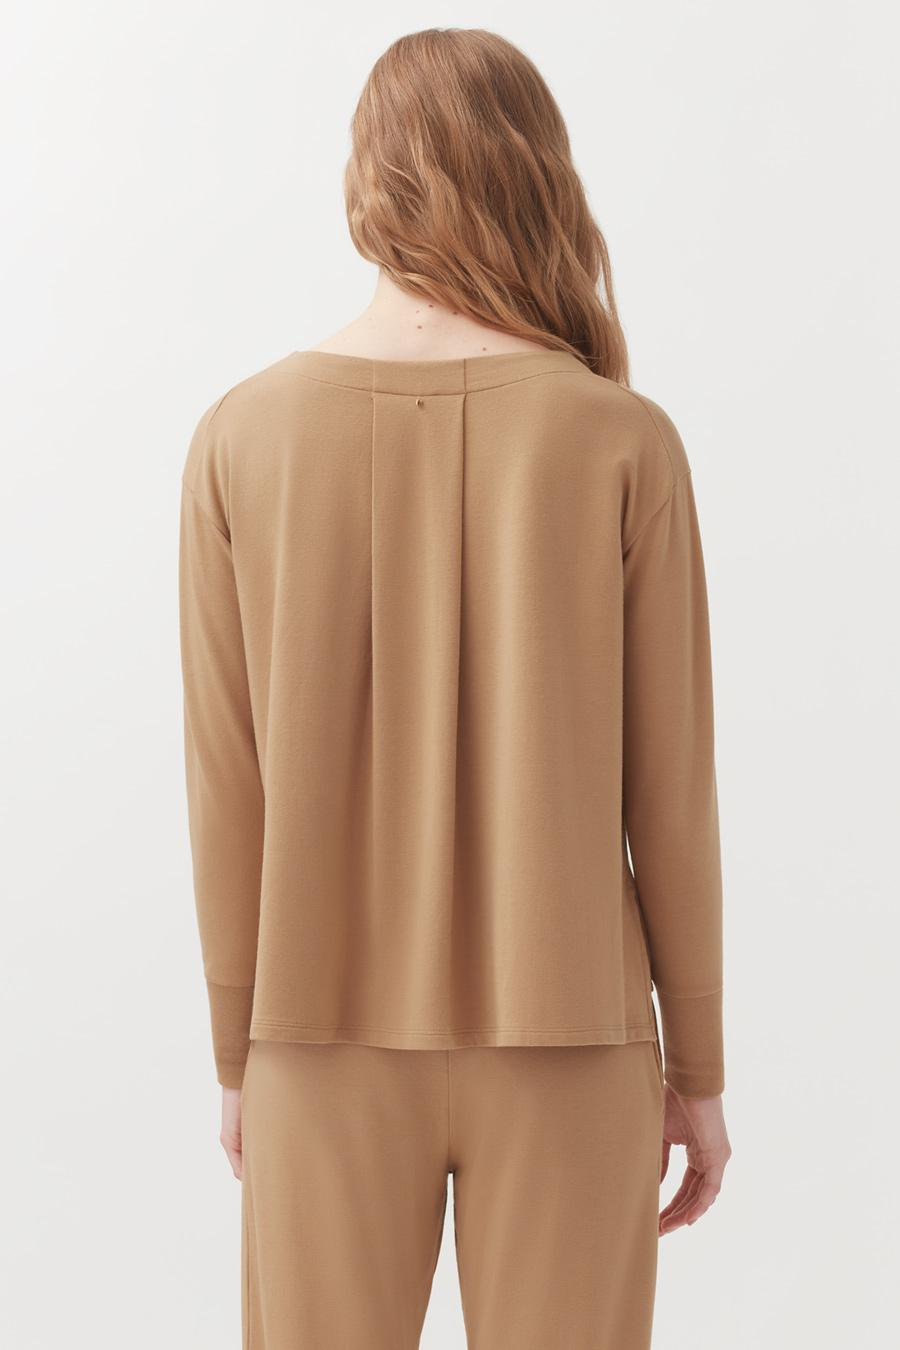 Women's French Terry V-Neck Sweatshirt in Camel | Size: 2